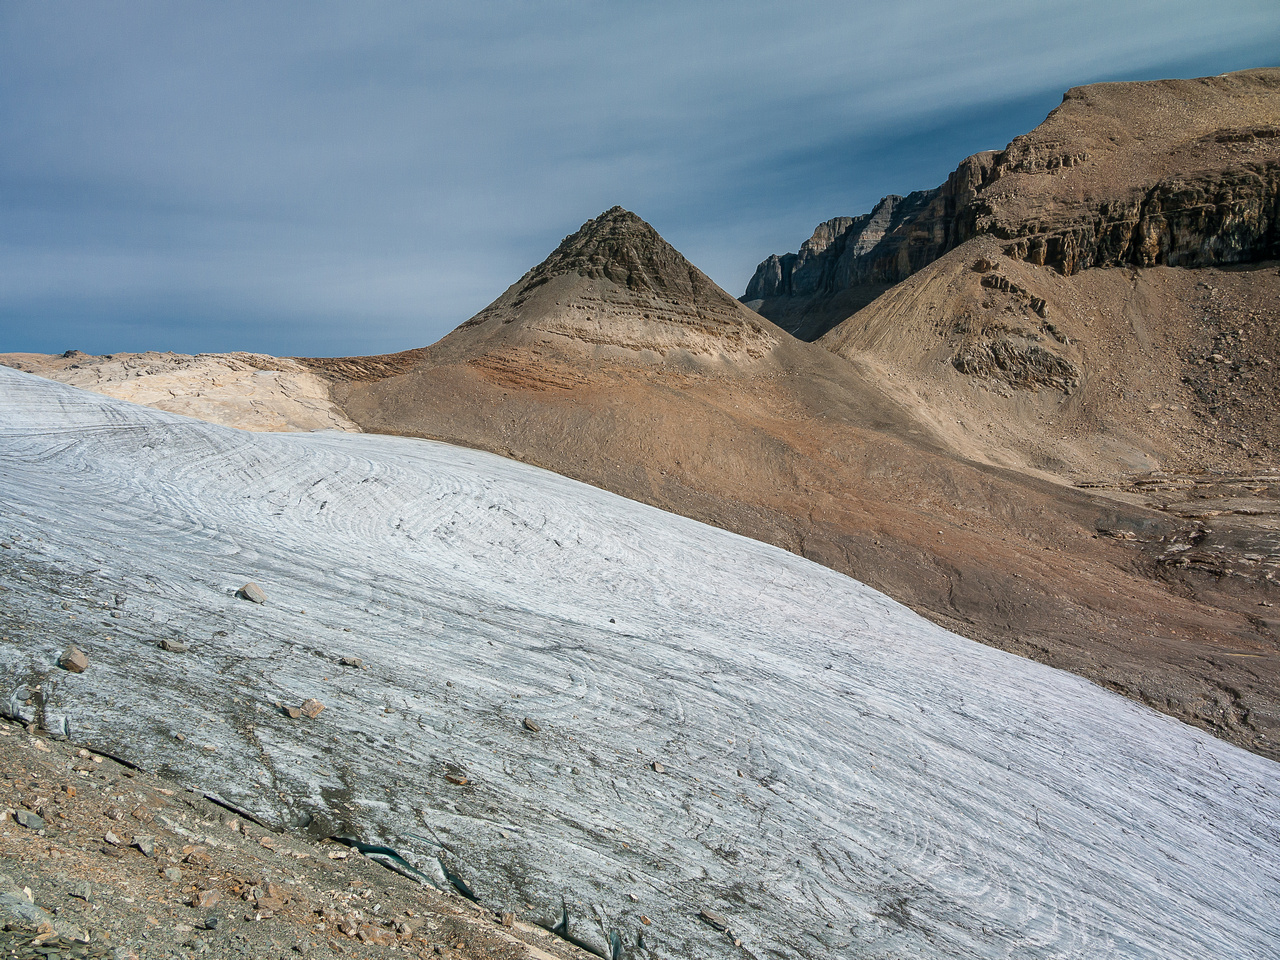 The tame glacier and pyramid that we must traverse before ascending Daly.